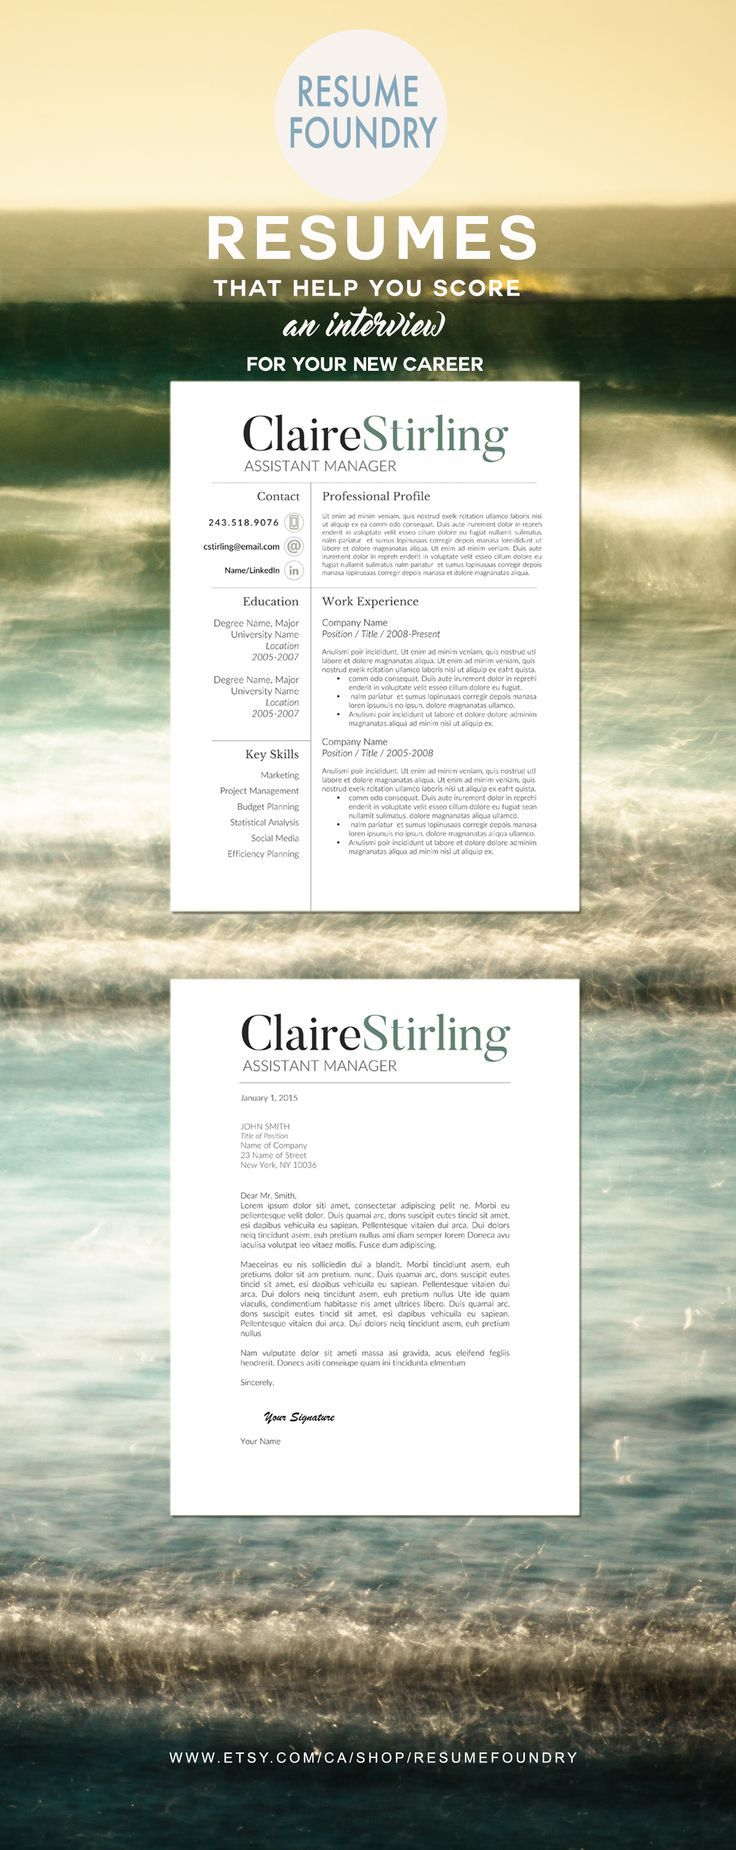 194 best Resume Design images on Pinterest | Resume ideas, Cv ...